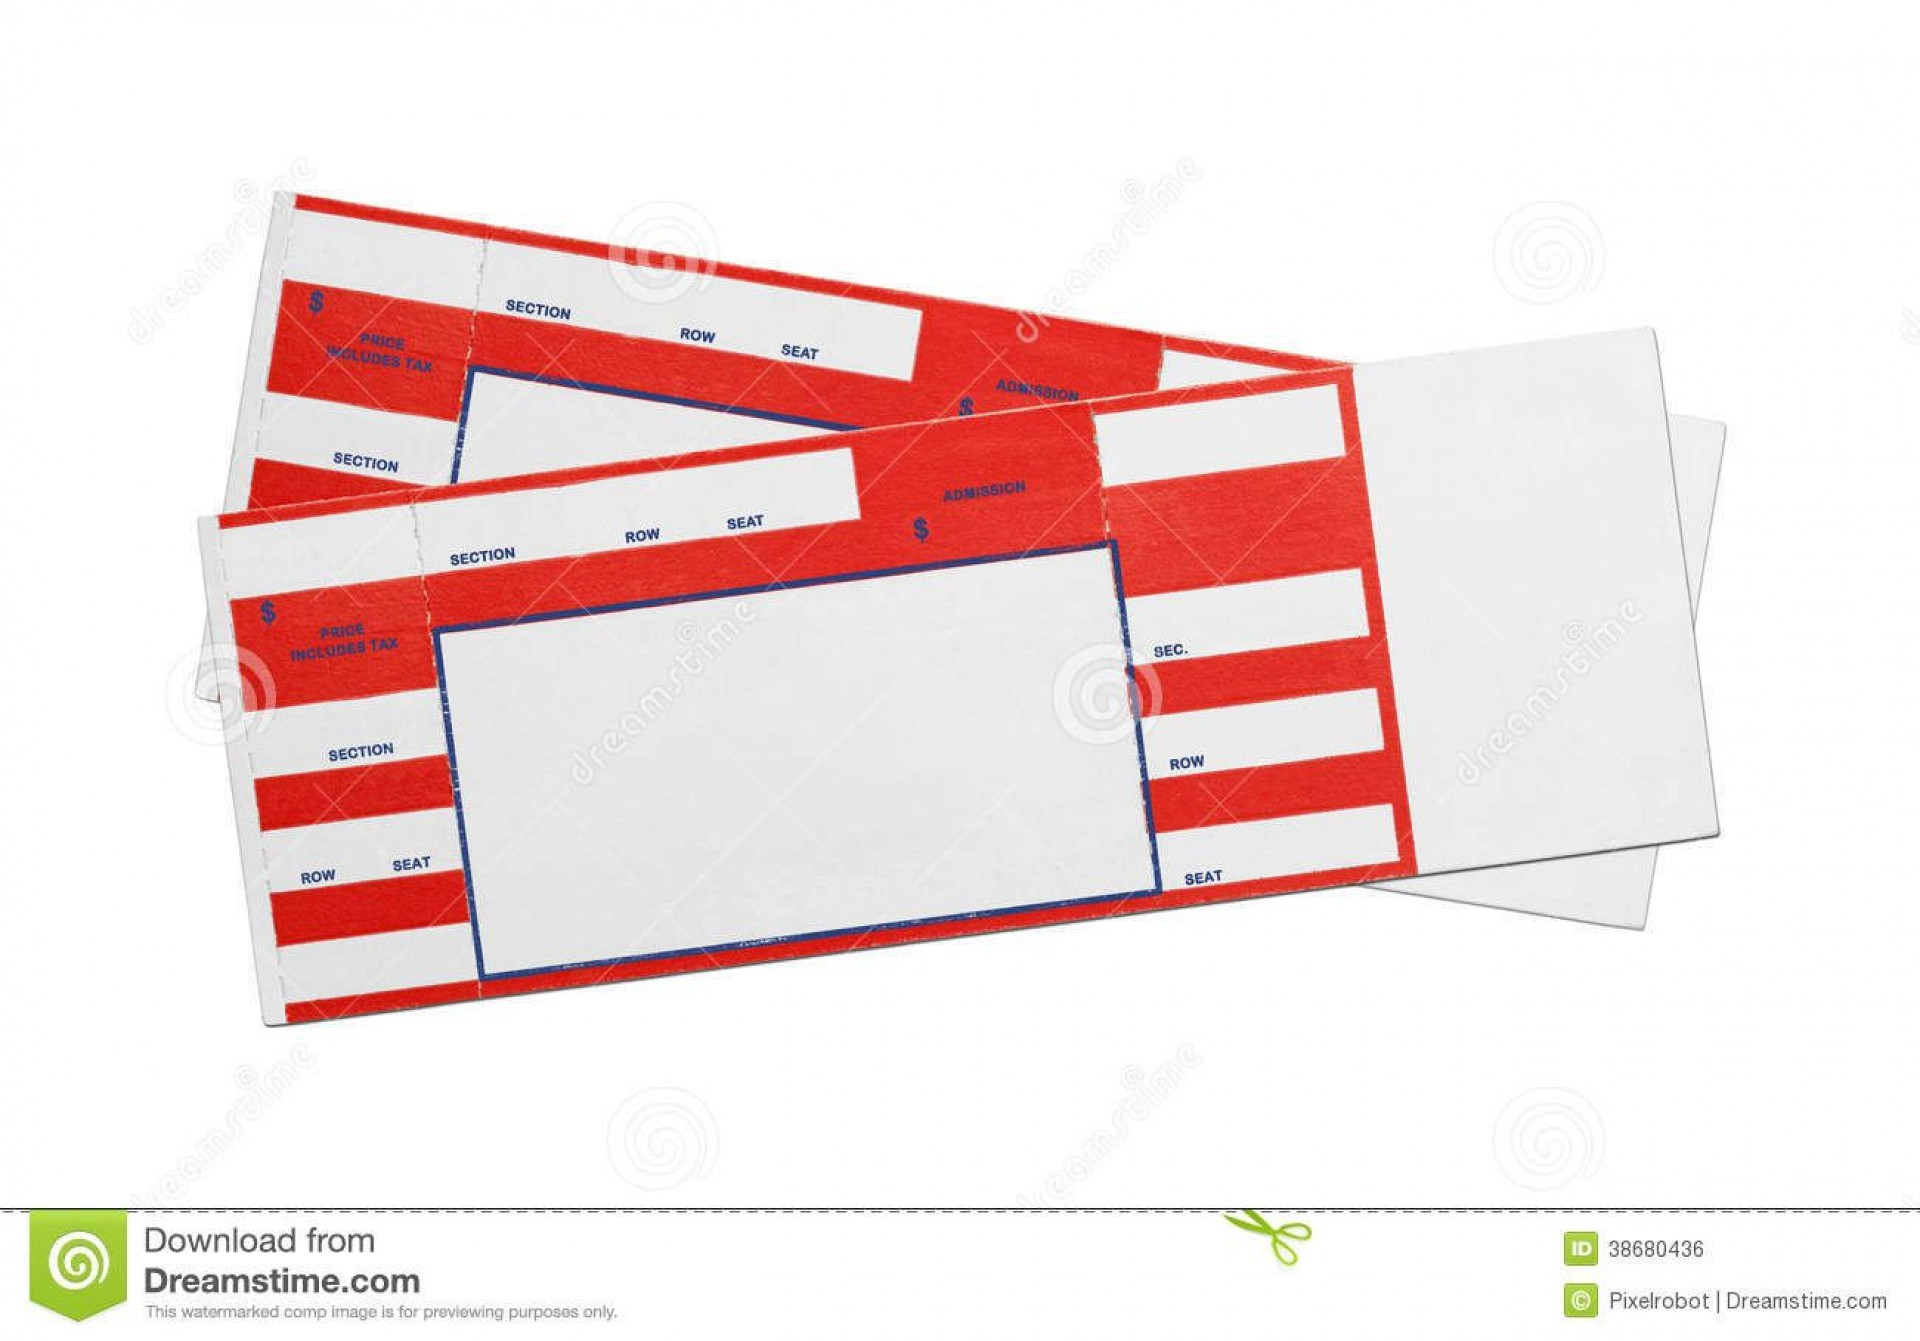 005 Top Free Concert Ticket Template Printable Picture  Gift1920